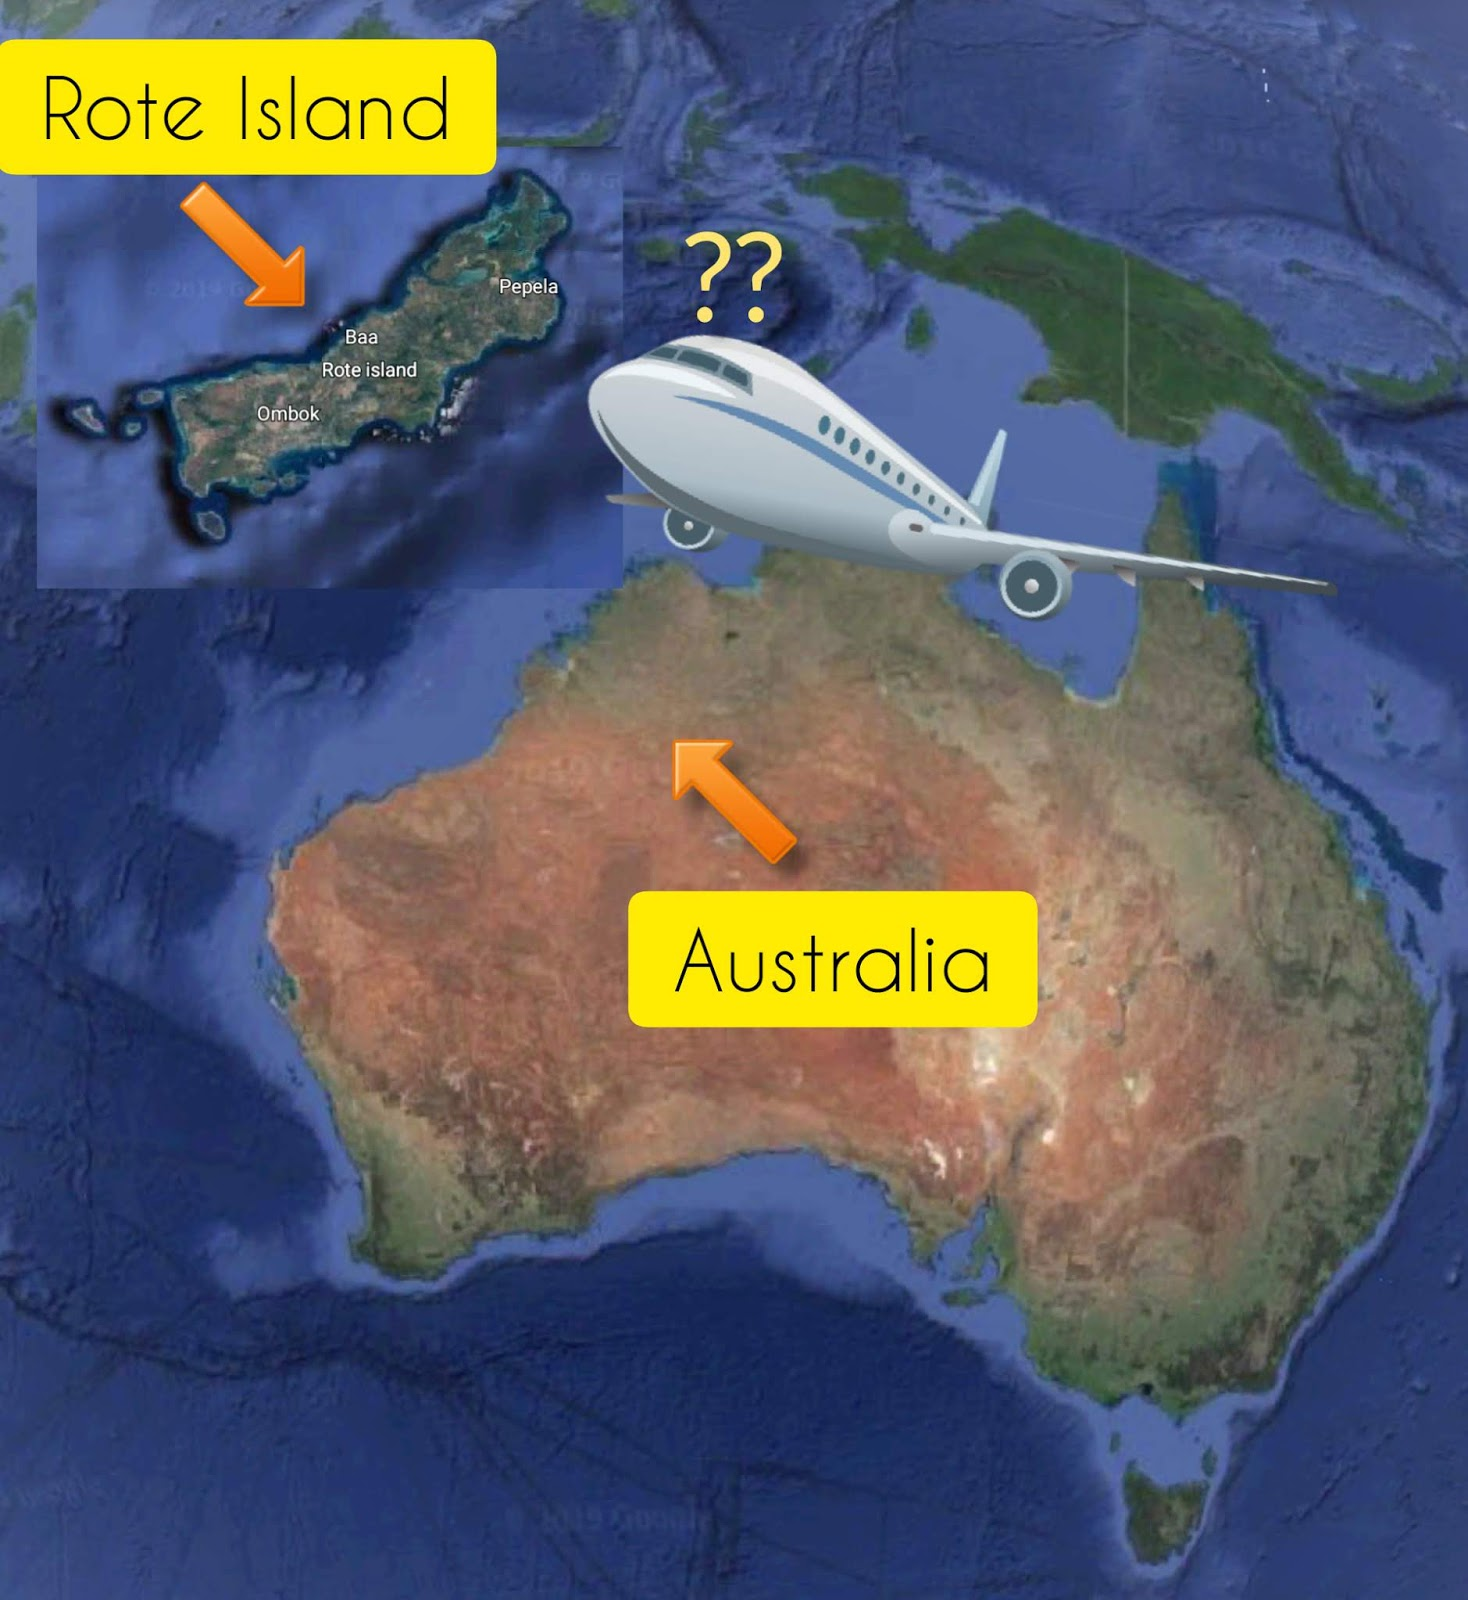 how to get to rote island from australia